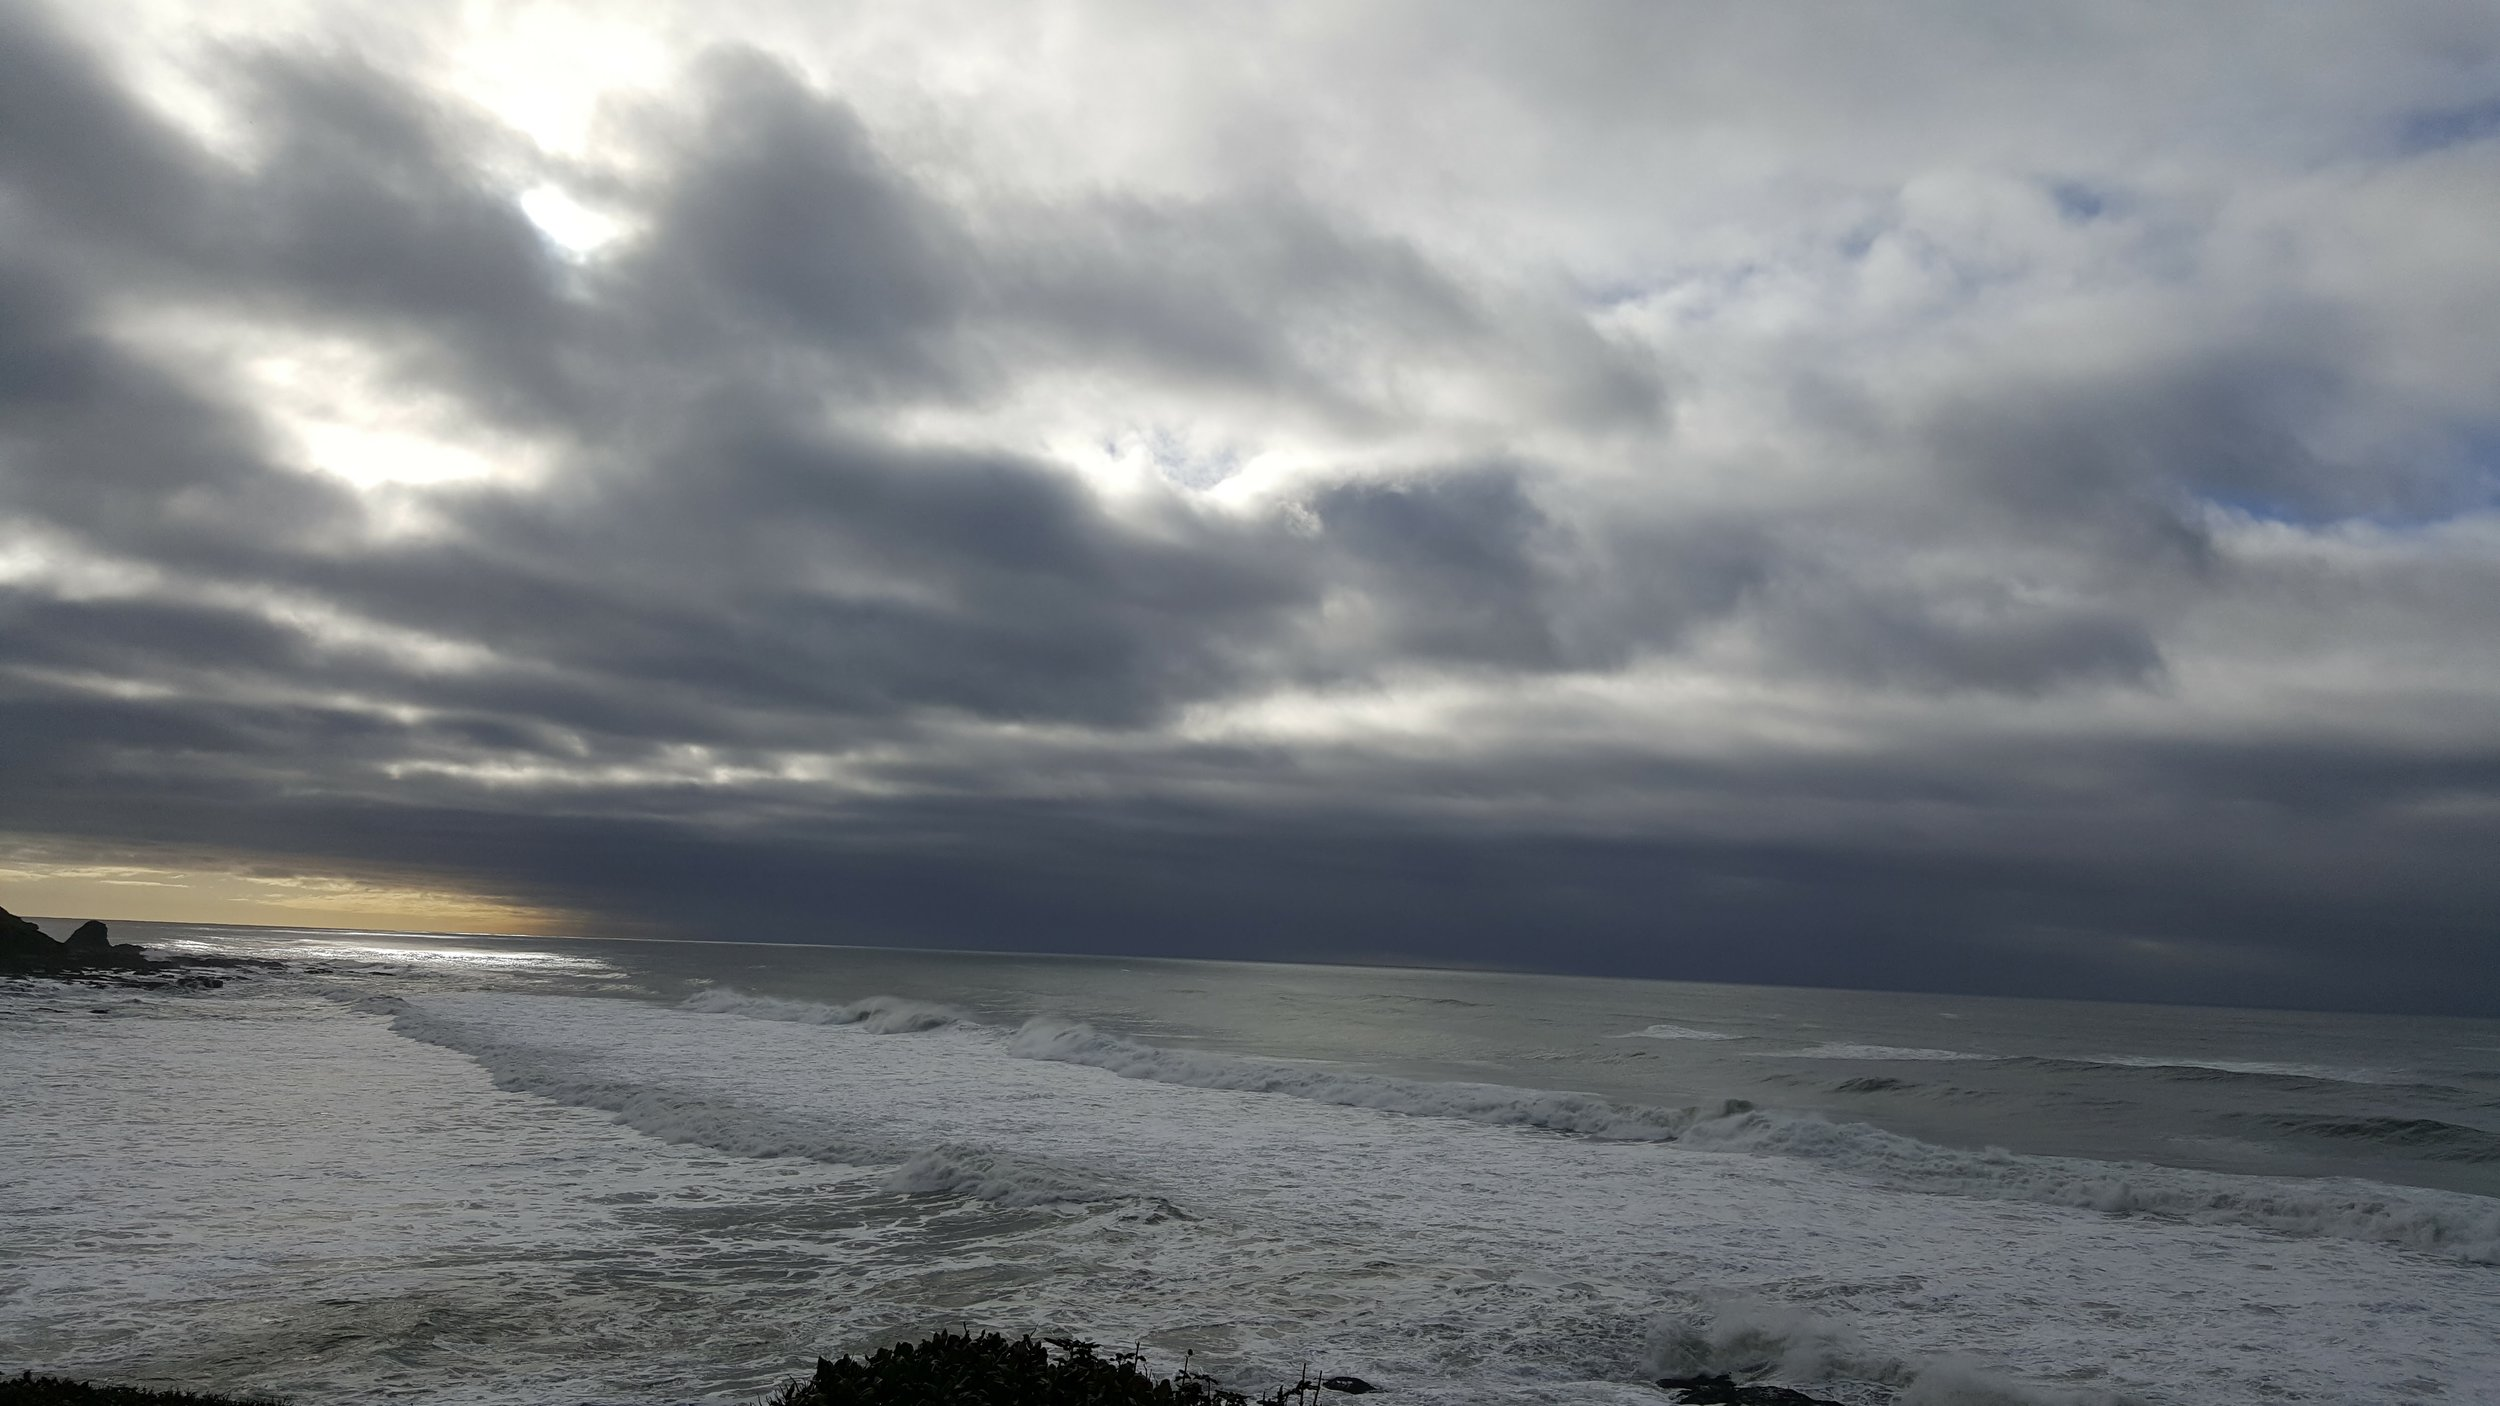 Cape Perpetua - Phenomenal views